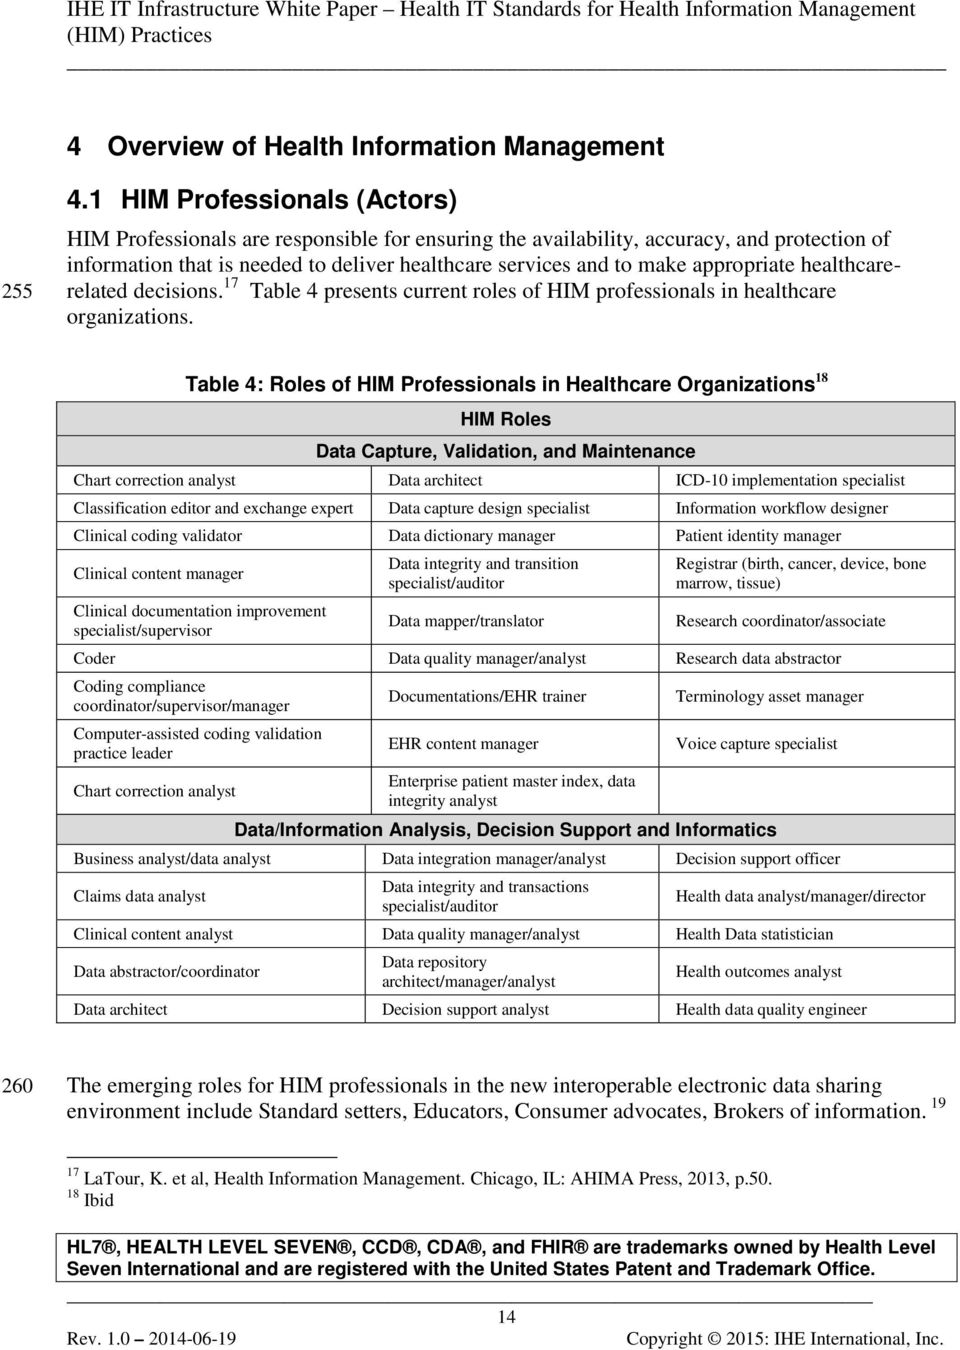 appropriate healthcarerelated decisions. 17 Table 4 presents current roles of HIM professionals in healthcare organizations.